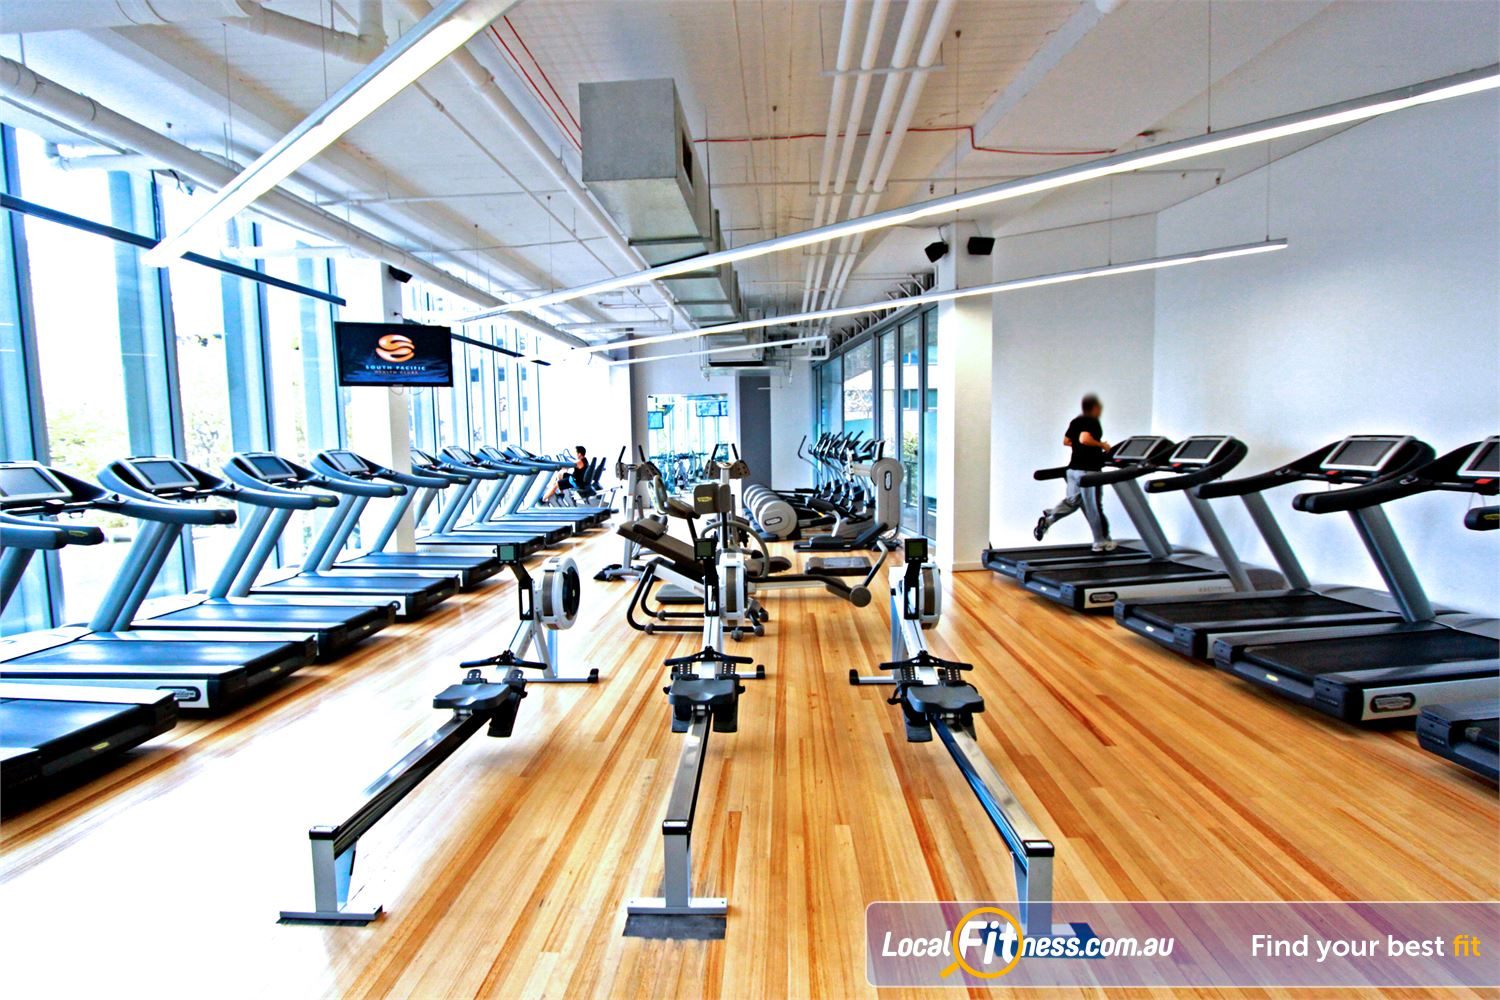 South Pacific Health Clubs Melbourne Over 140 pieces of state of the art strength and cardio.